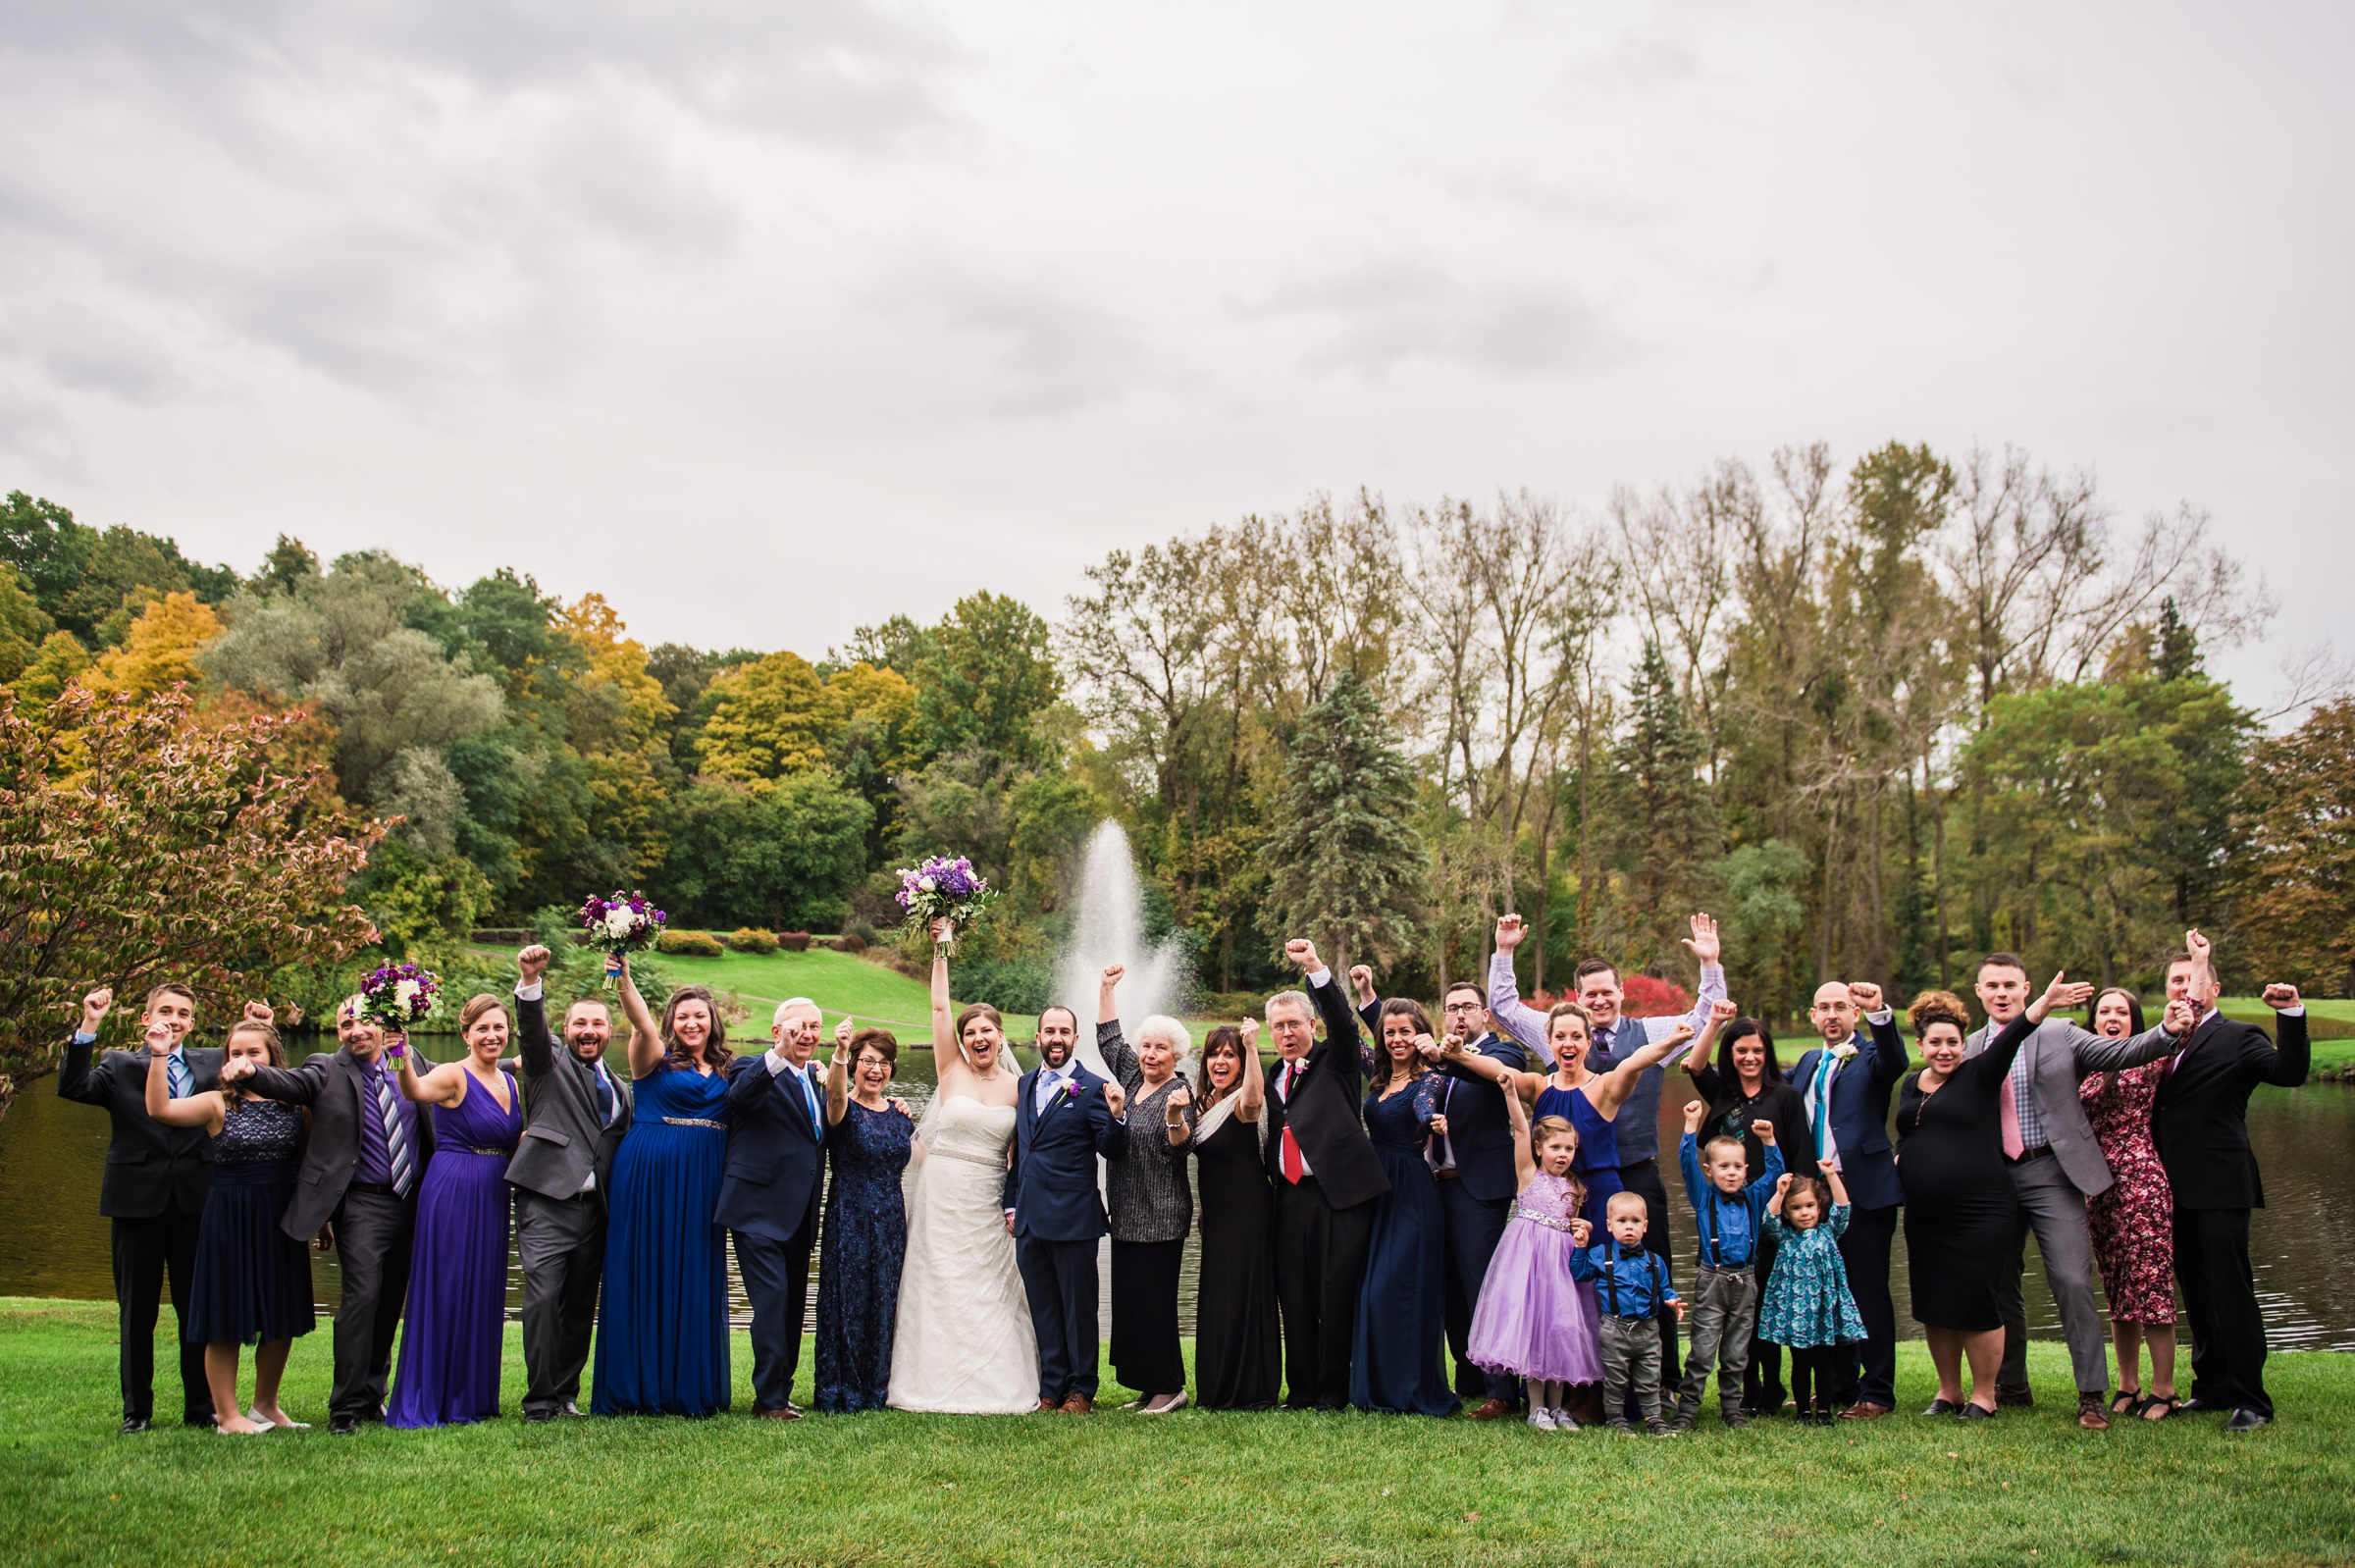 JILL_STUDIO_Wedding_JILL_STUDIO_Rochester_NY_Photographer_29-DSC_5892.jpg